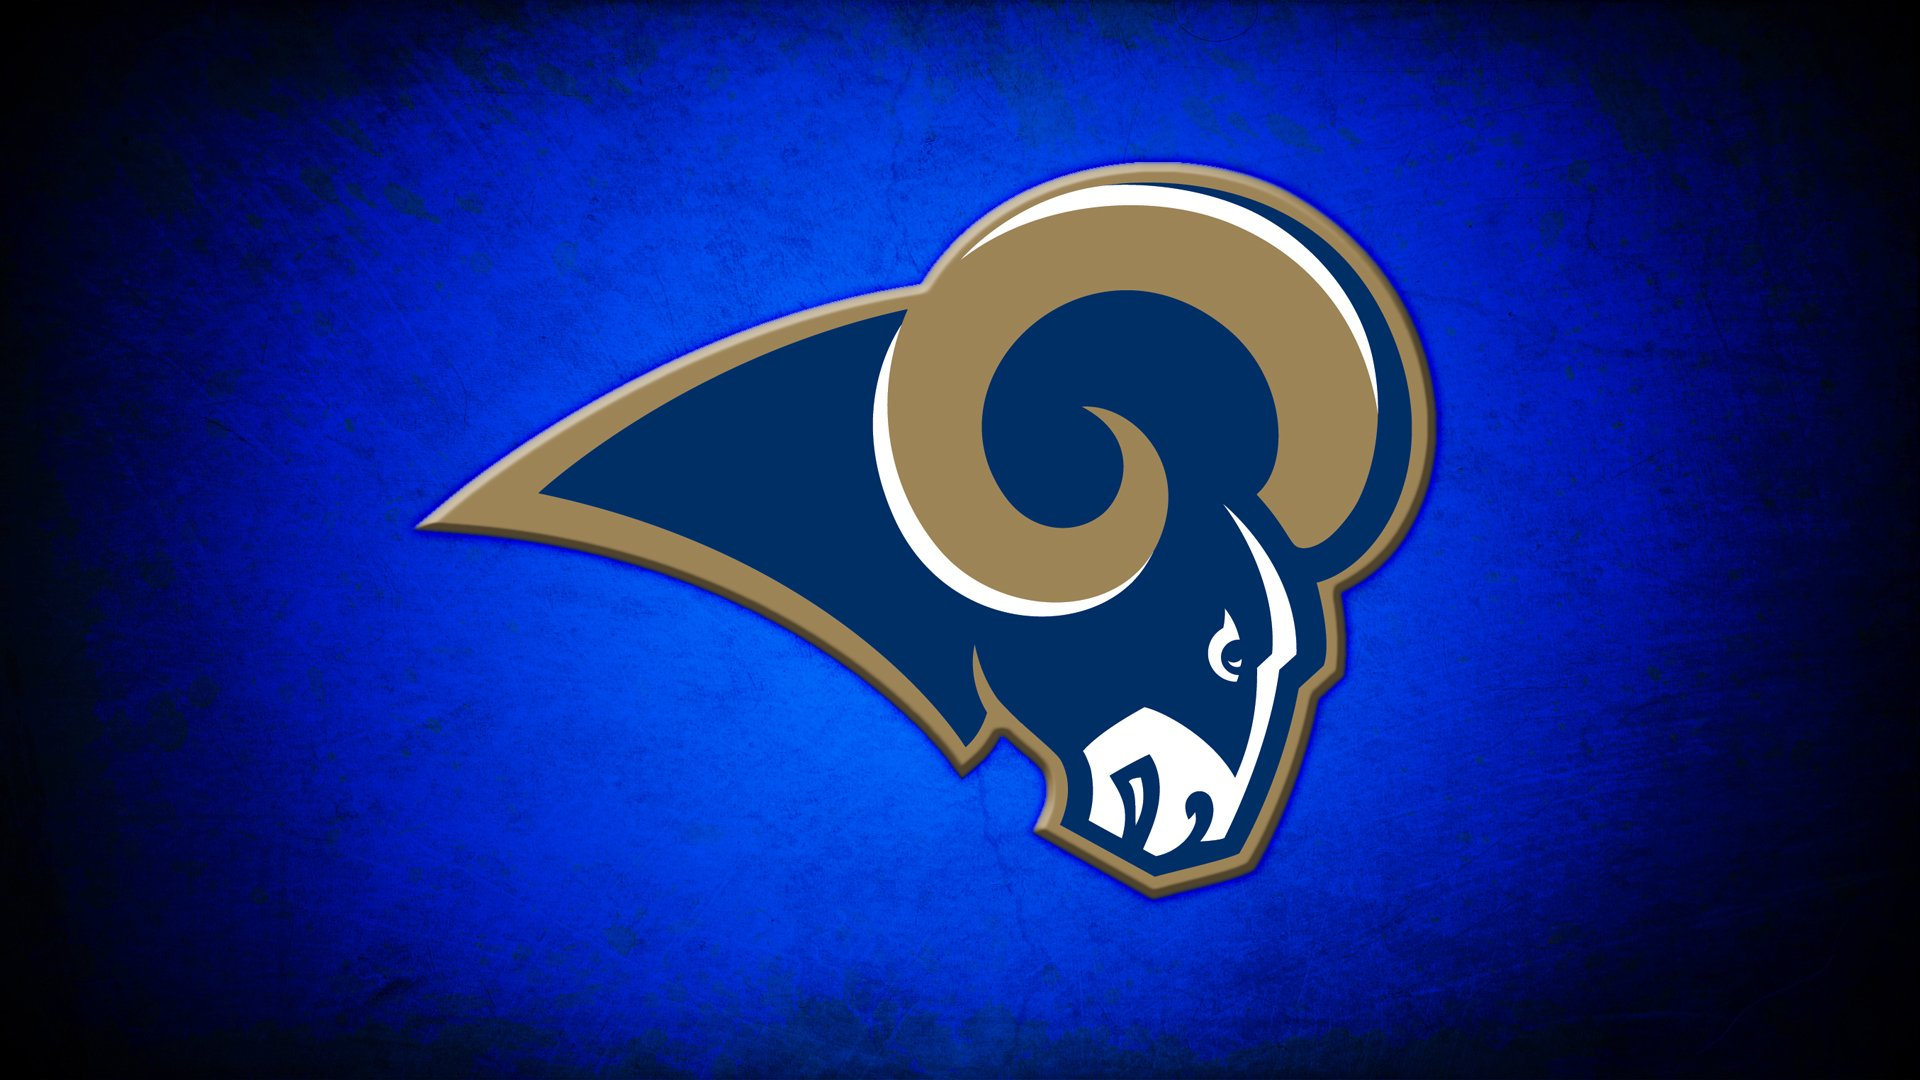 St Louis Rams HD images St Louis Rams wallpapers 1920x1080